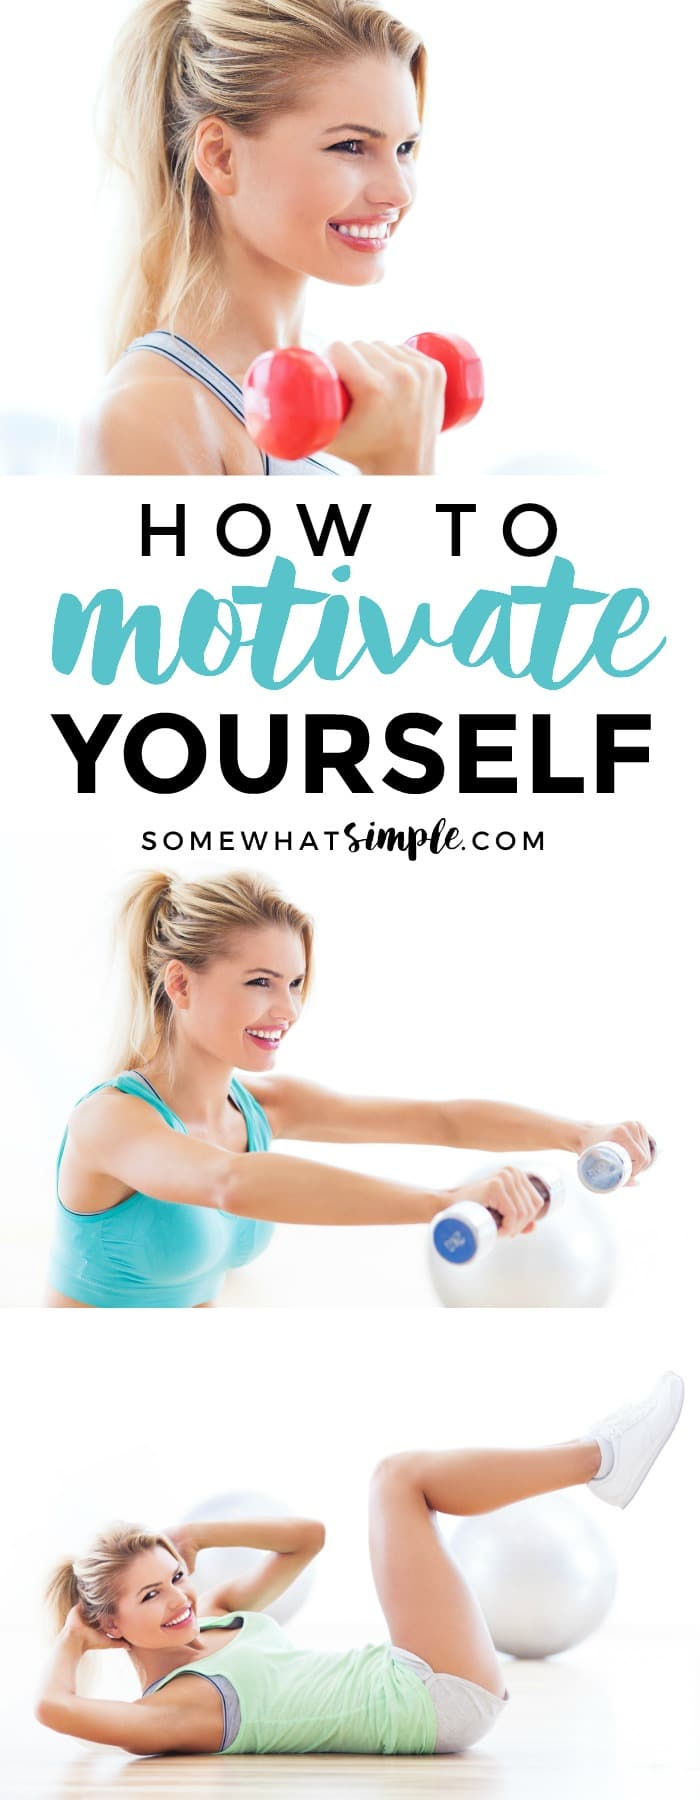 I'll be honest, I do not LOVE exercising. I love being DONE with exercising 'cause I always feel better after burning calories, but finding the motivation to get up and get moving is hard!If you want to get fit but lack motivation to get off the couch, here are a few simple tips that have totally worked for me!